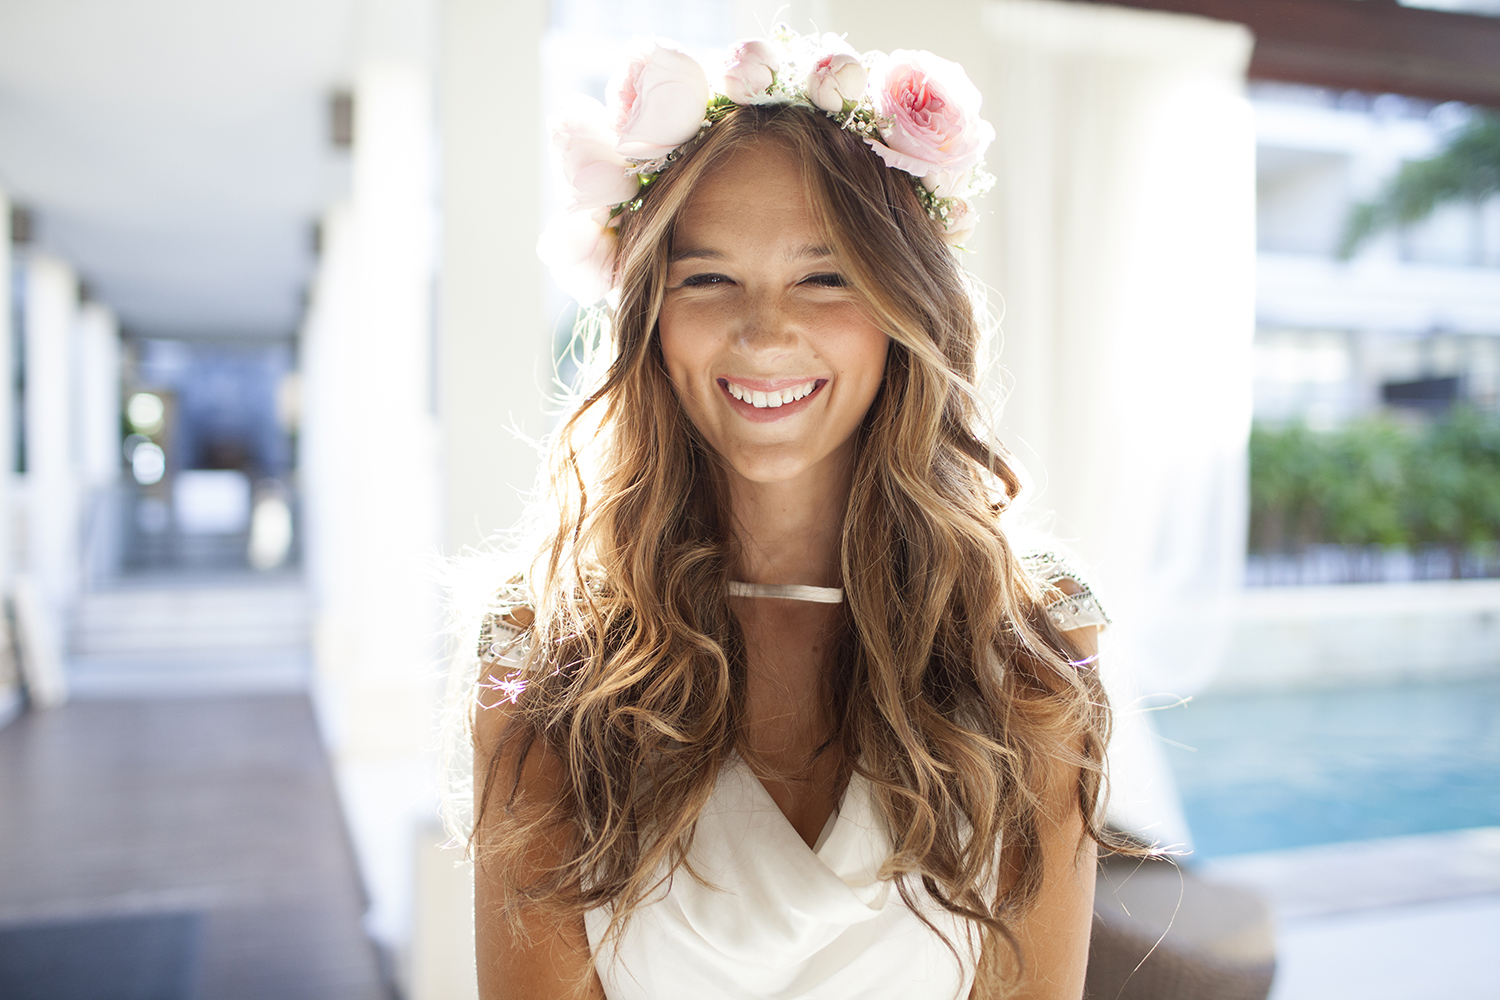 The biggest mistakes couples make when planning a summer wedding woman with flower crown on her head izmirmasajfo